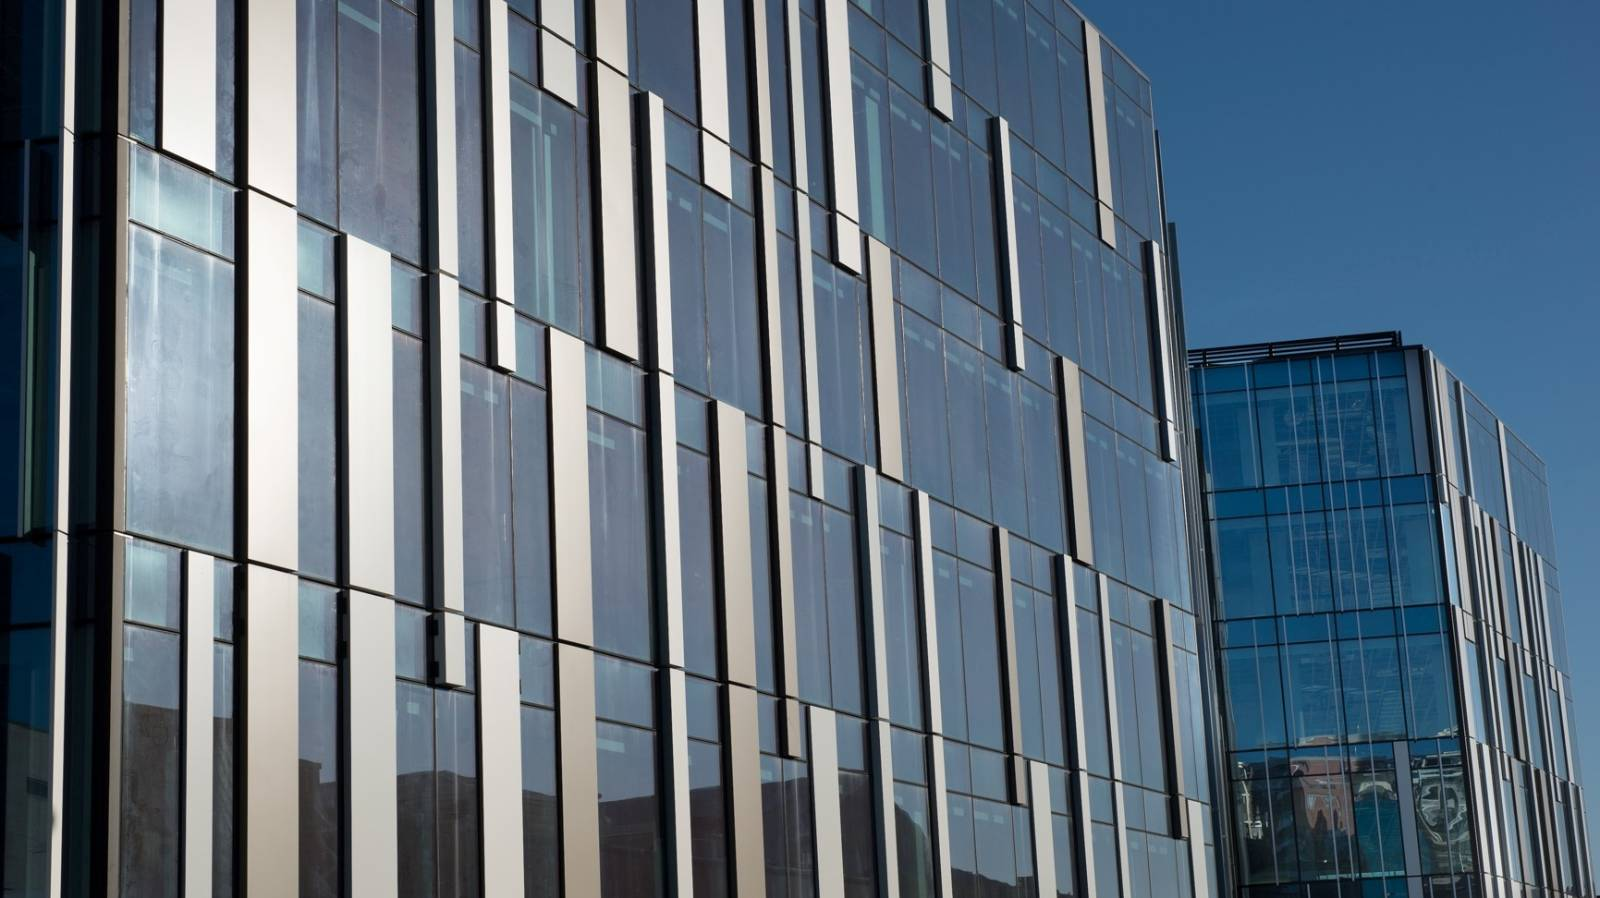 Snugger Government buildings could move the whole office market